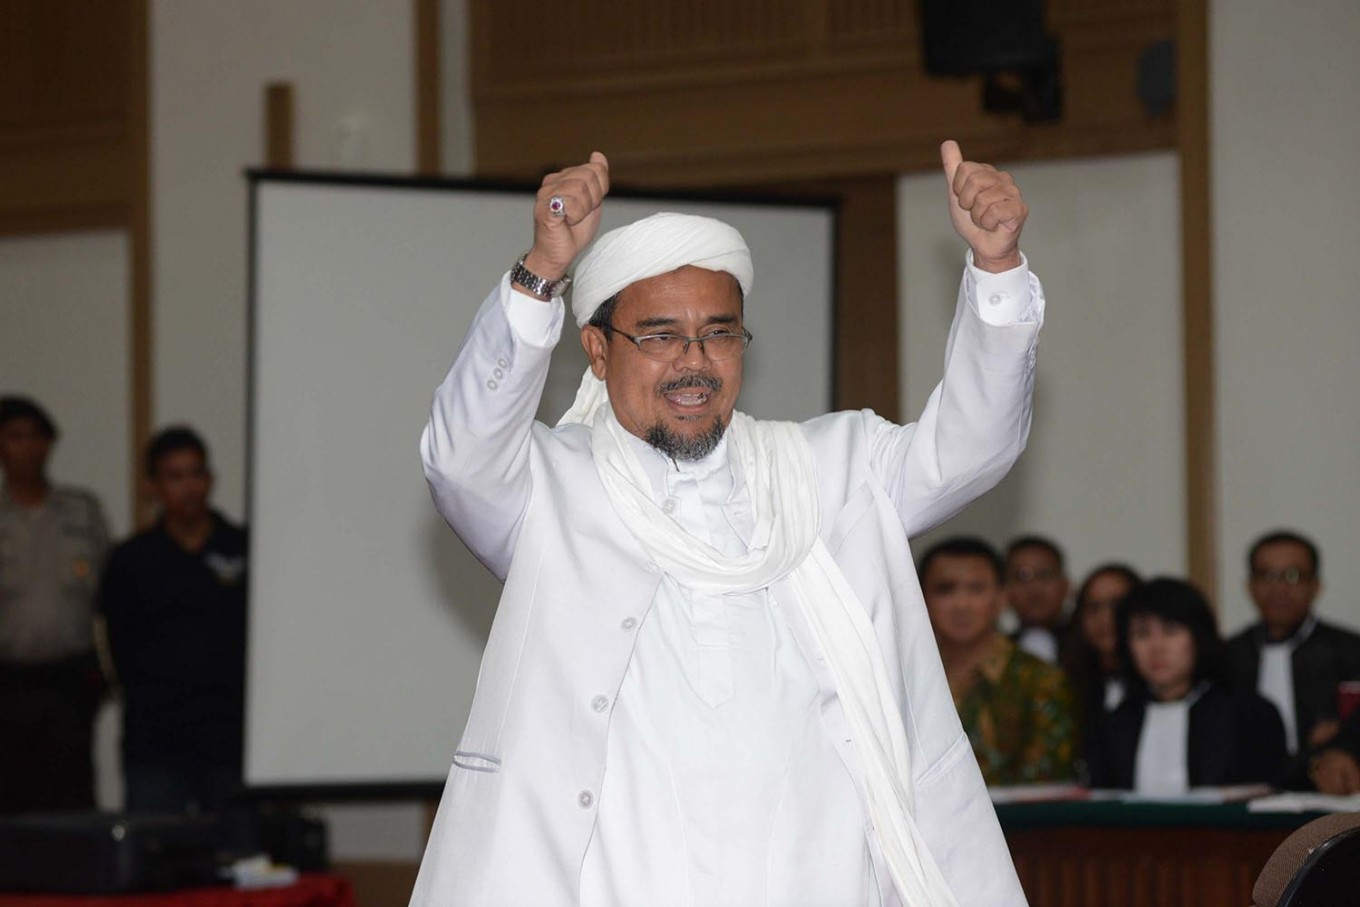 Rizieq may leave Saudi Arabia. But only if he pays fine for overstaying, Indonesia's envoy says